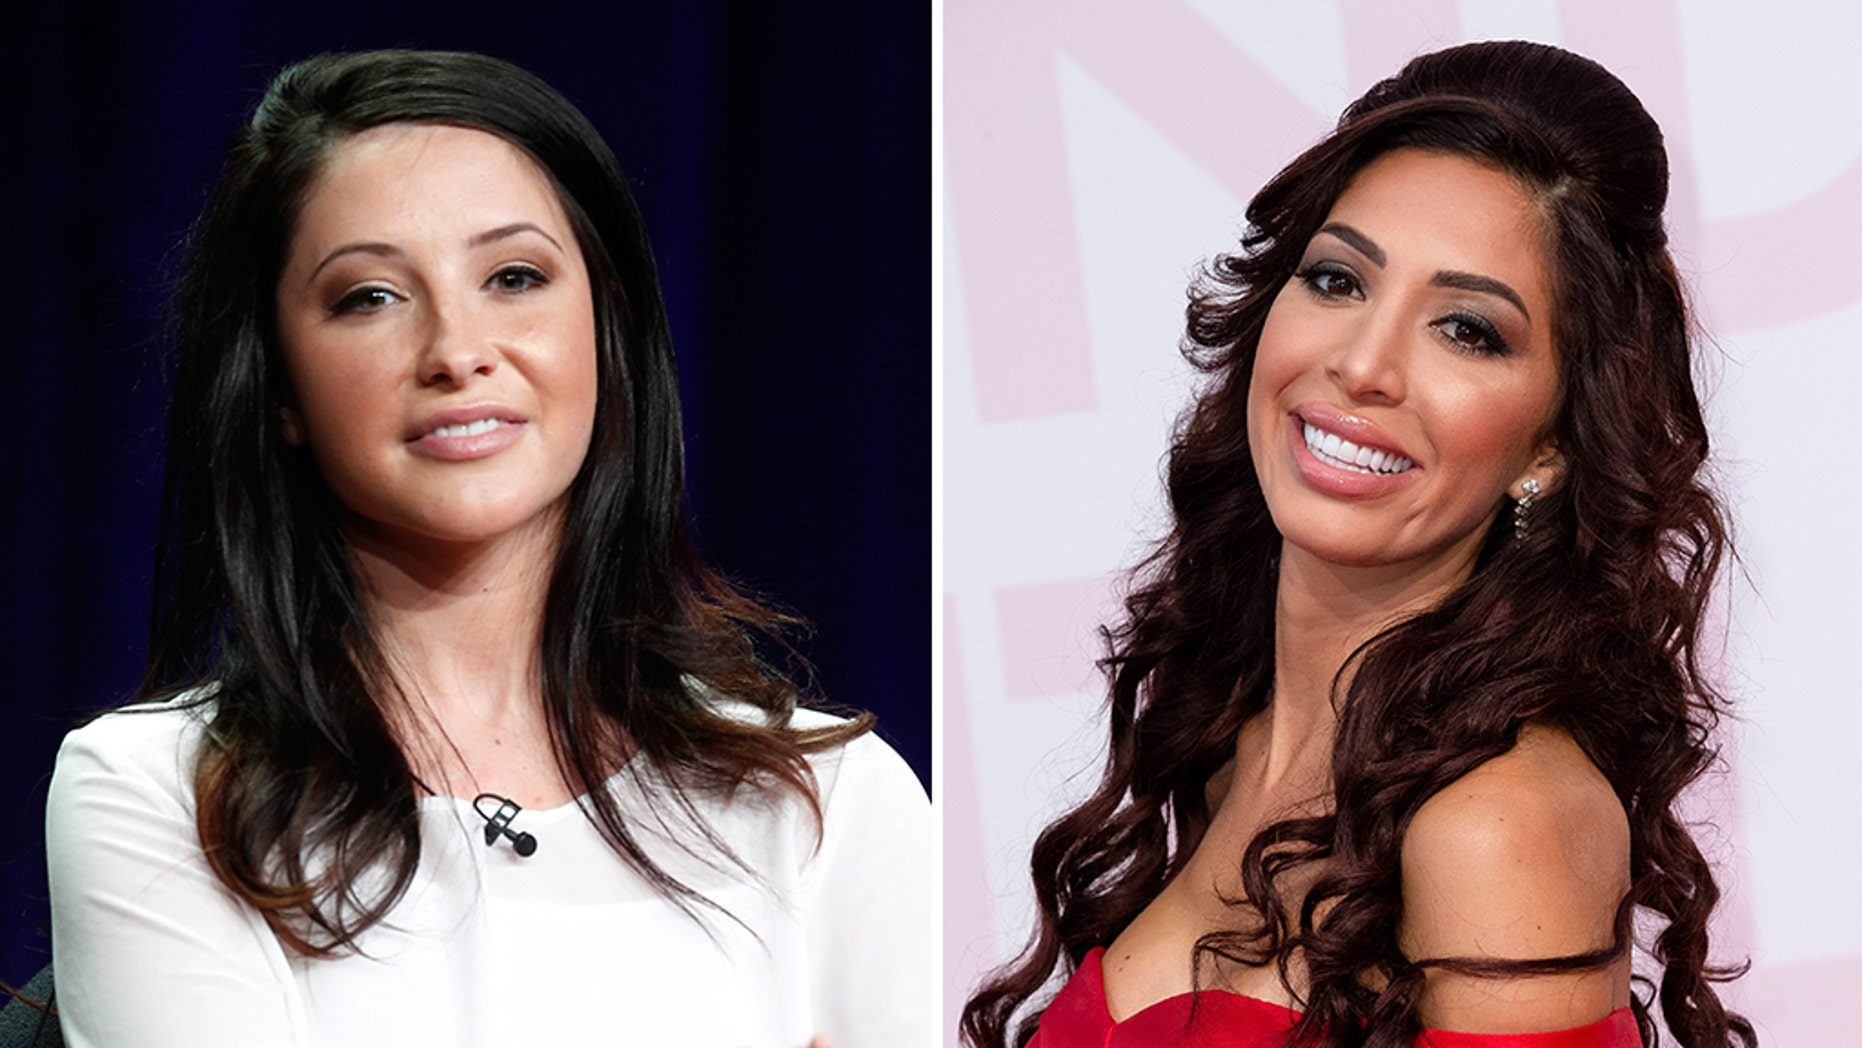 """Teen Mom OG"" alum Farrah Abraham says there is no ""replacement"" for her, as Bristol Palin joins the reality series."